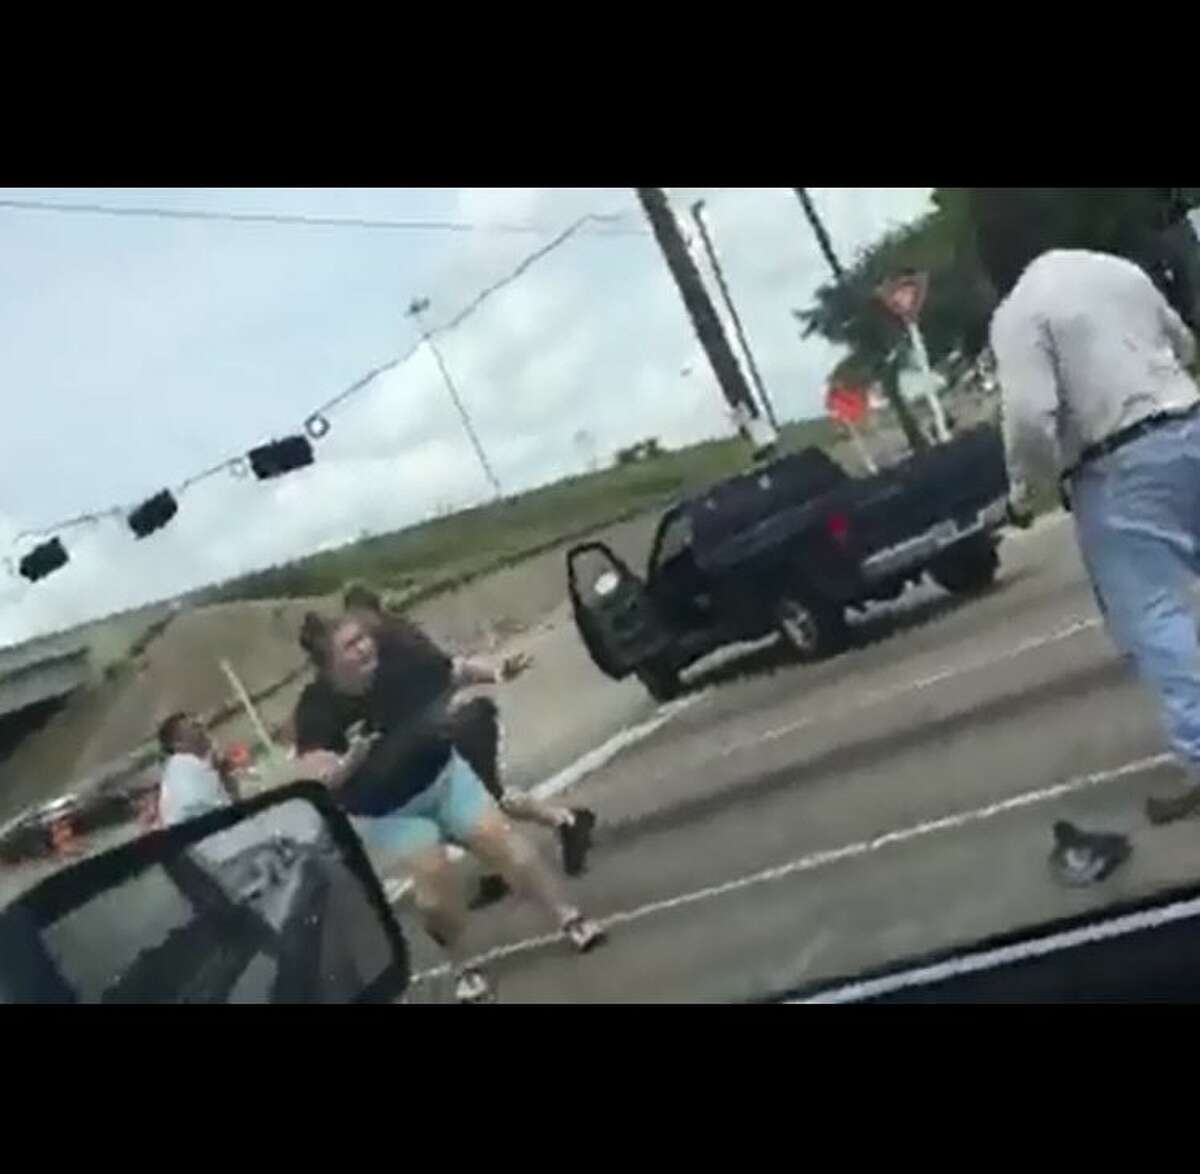 A street brawl caught on video Saturday in northwest Houston was a result of apparent road rage. Witnesses say the fight erupted after the driver of a truck did not want to let a car merge into traffic at Highway 6 near Interstate 290.